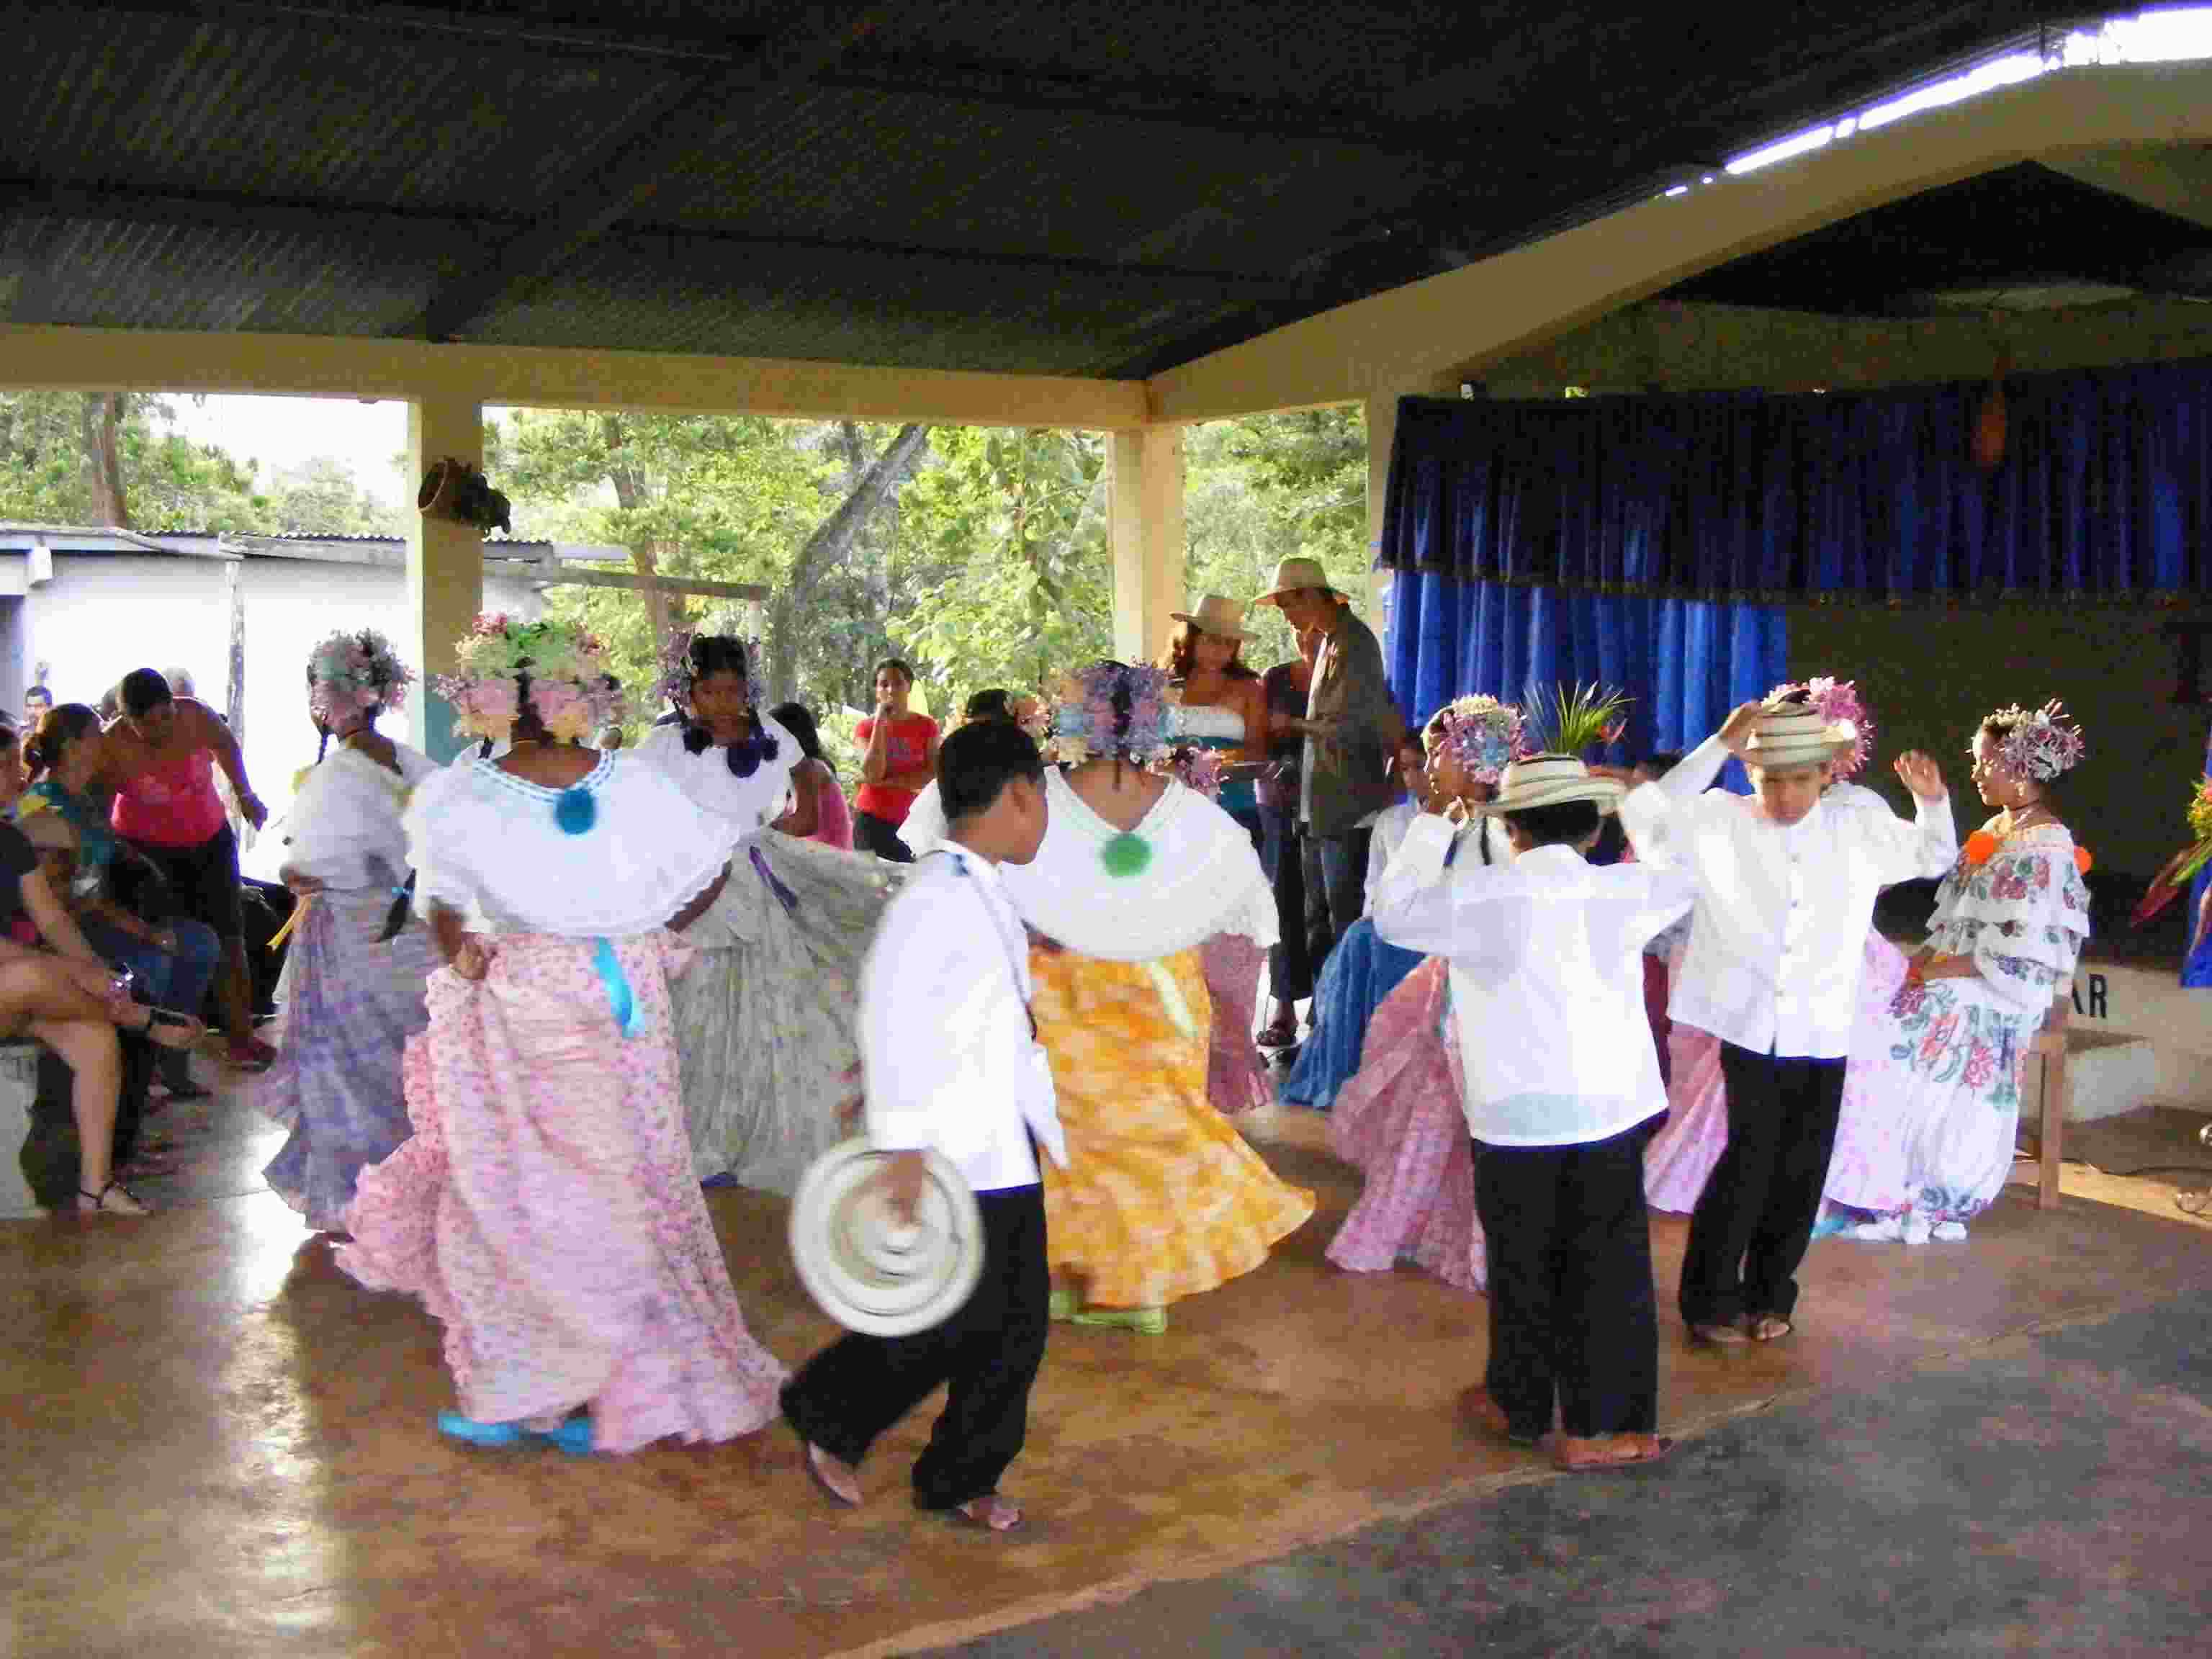 Elaborate folk dance